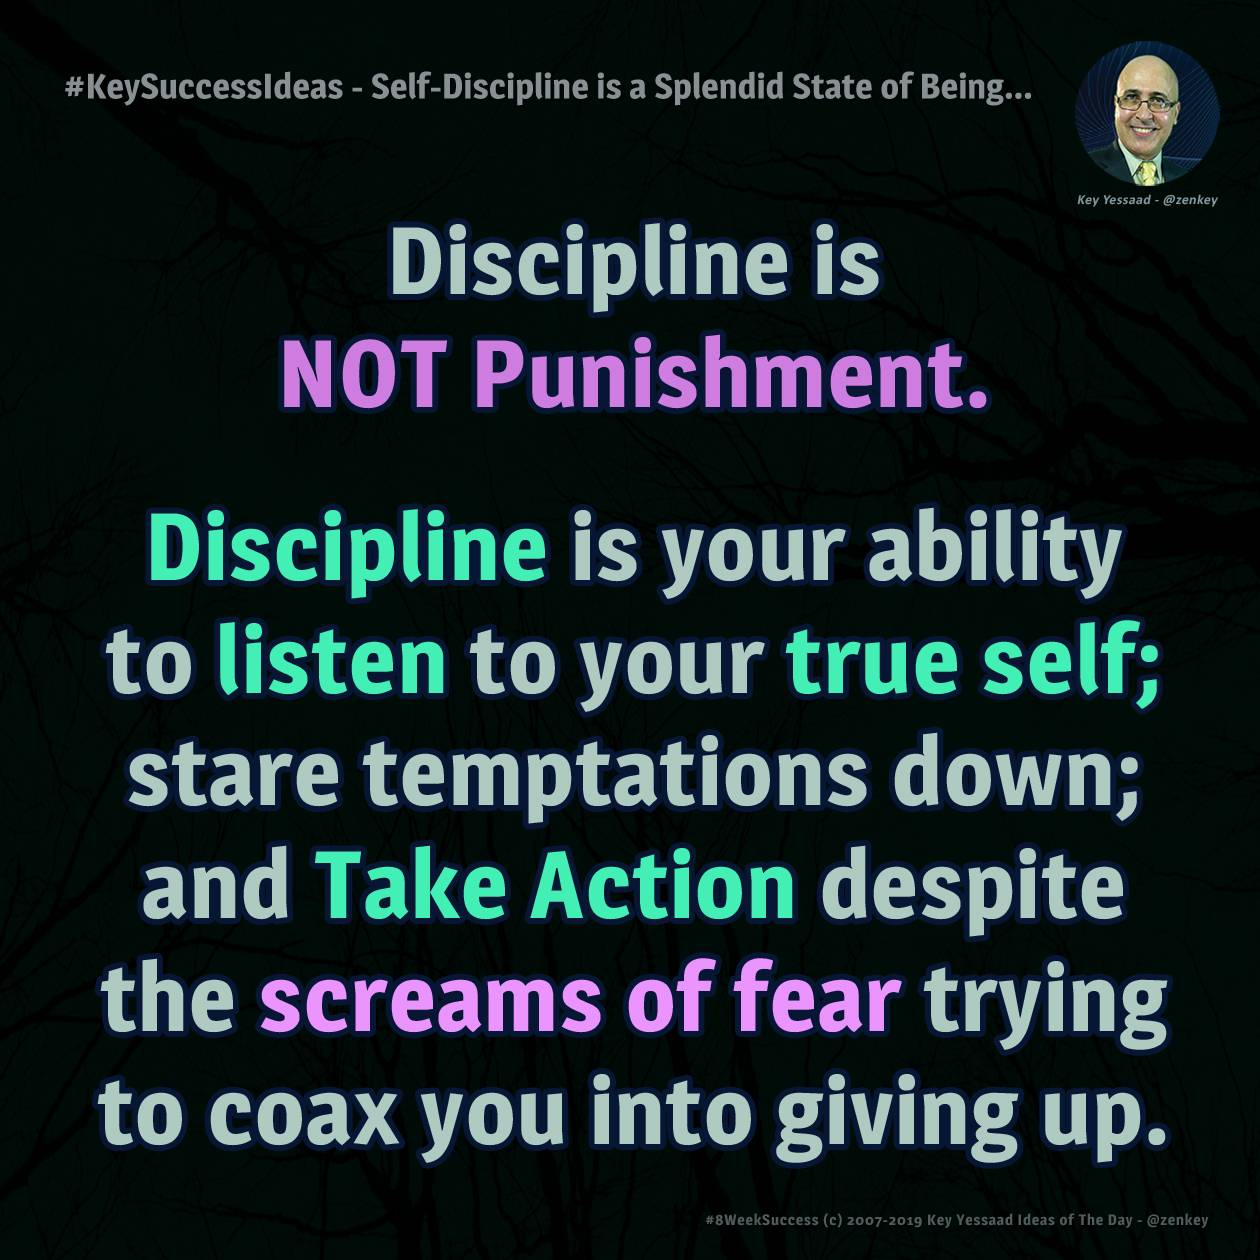 #KeySuccessIdeas - Self-Discipline is a Splendid State of Being...